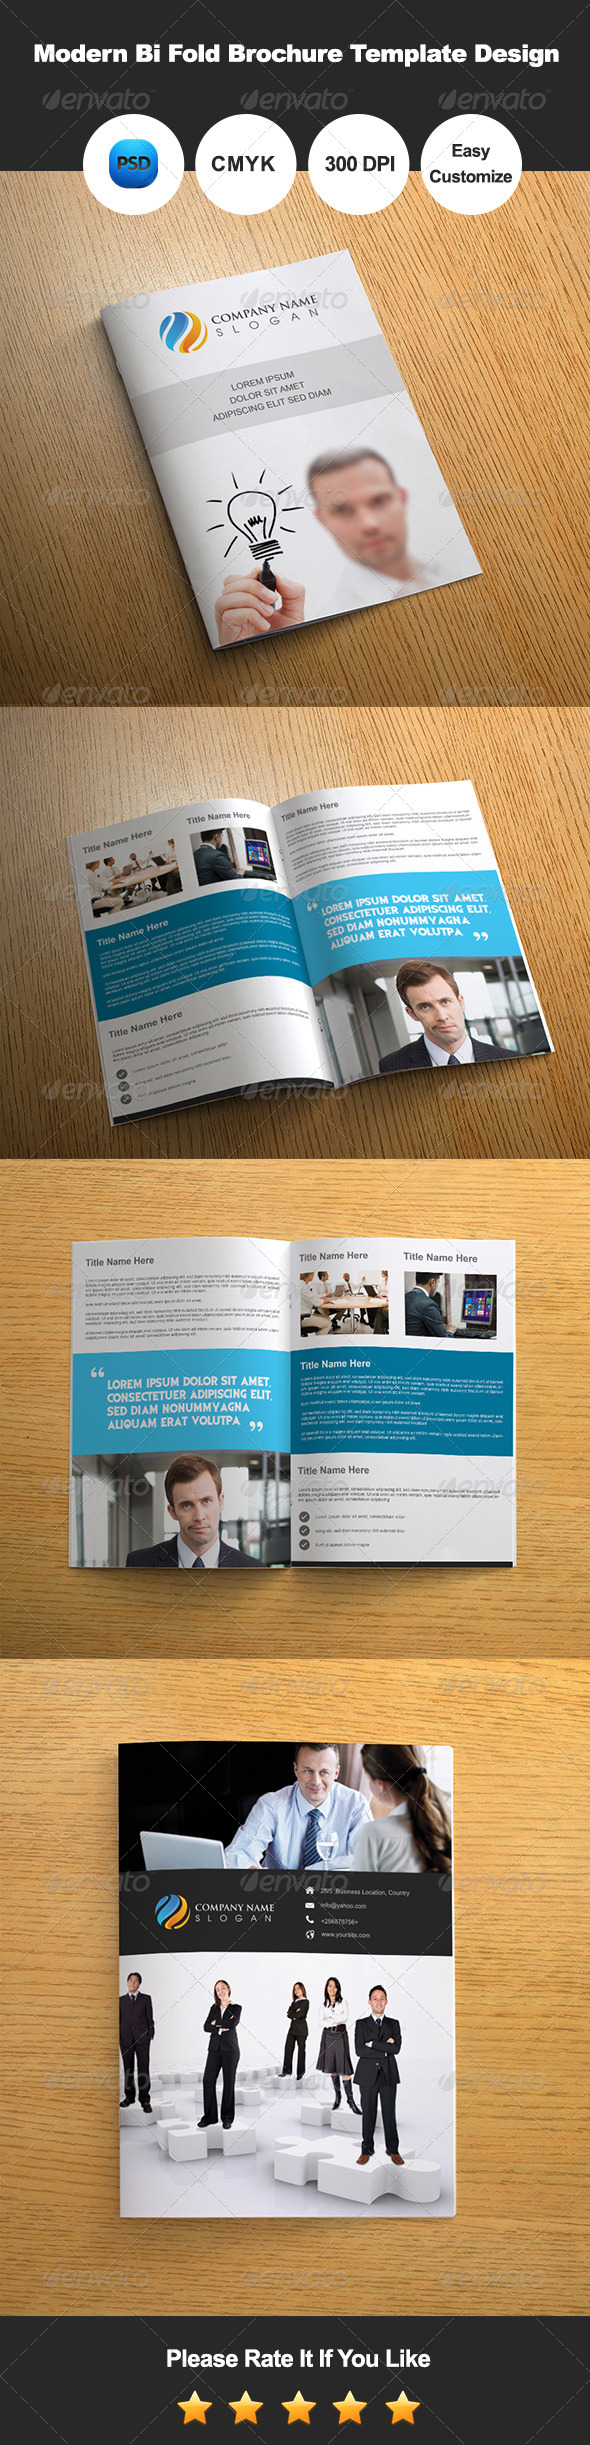 GraphicRiver Modern Bi Fold Brochure Template Design 7301395